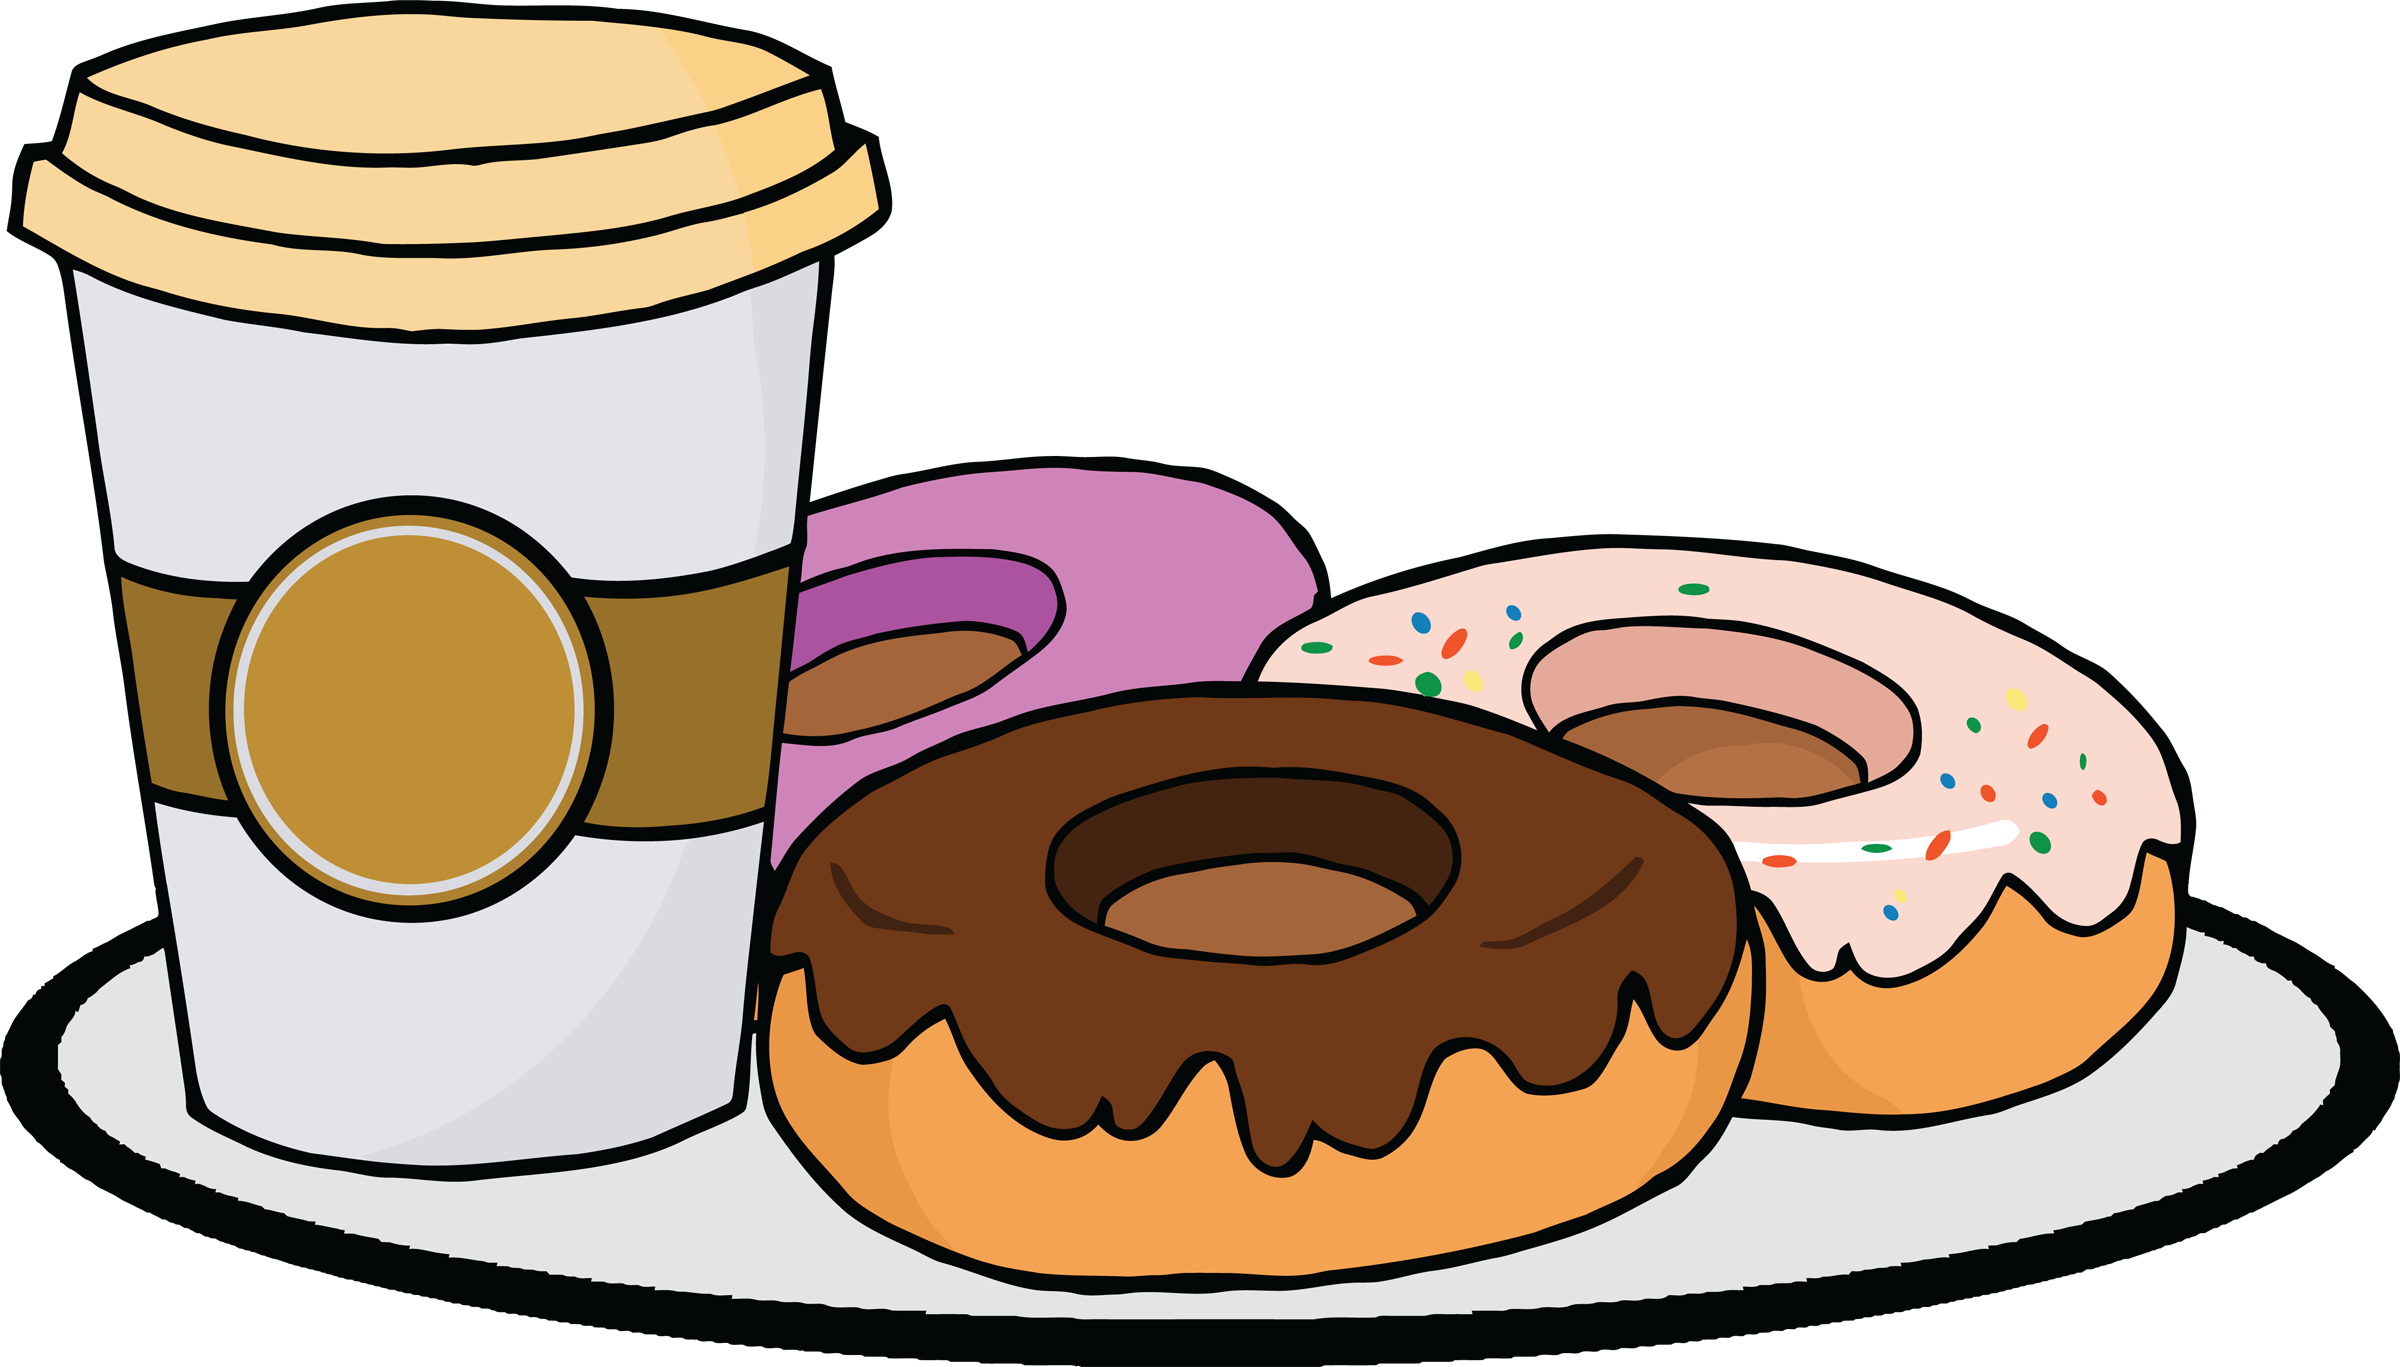 Coffee And Donuts Clipart | Free download on ClipArtMag